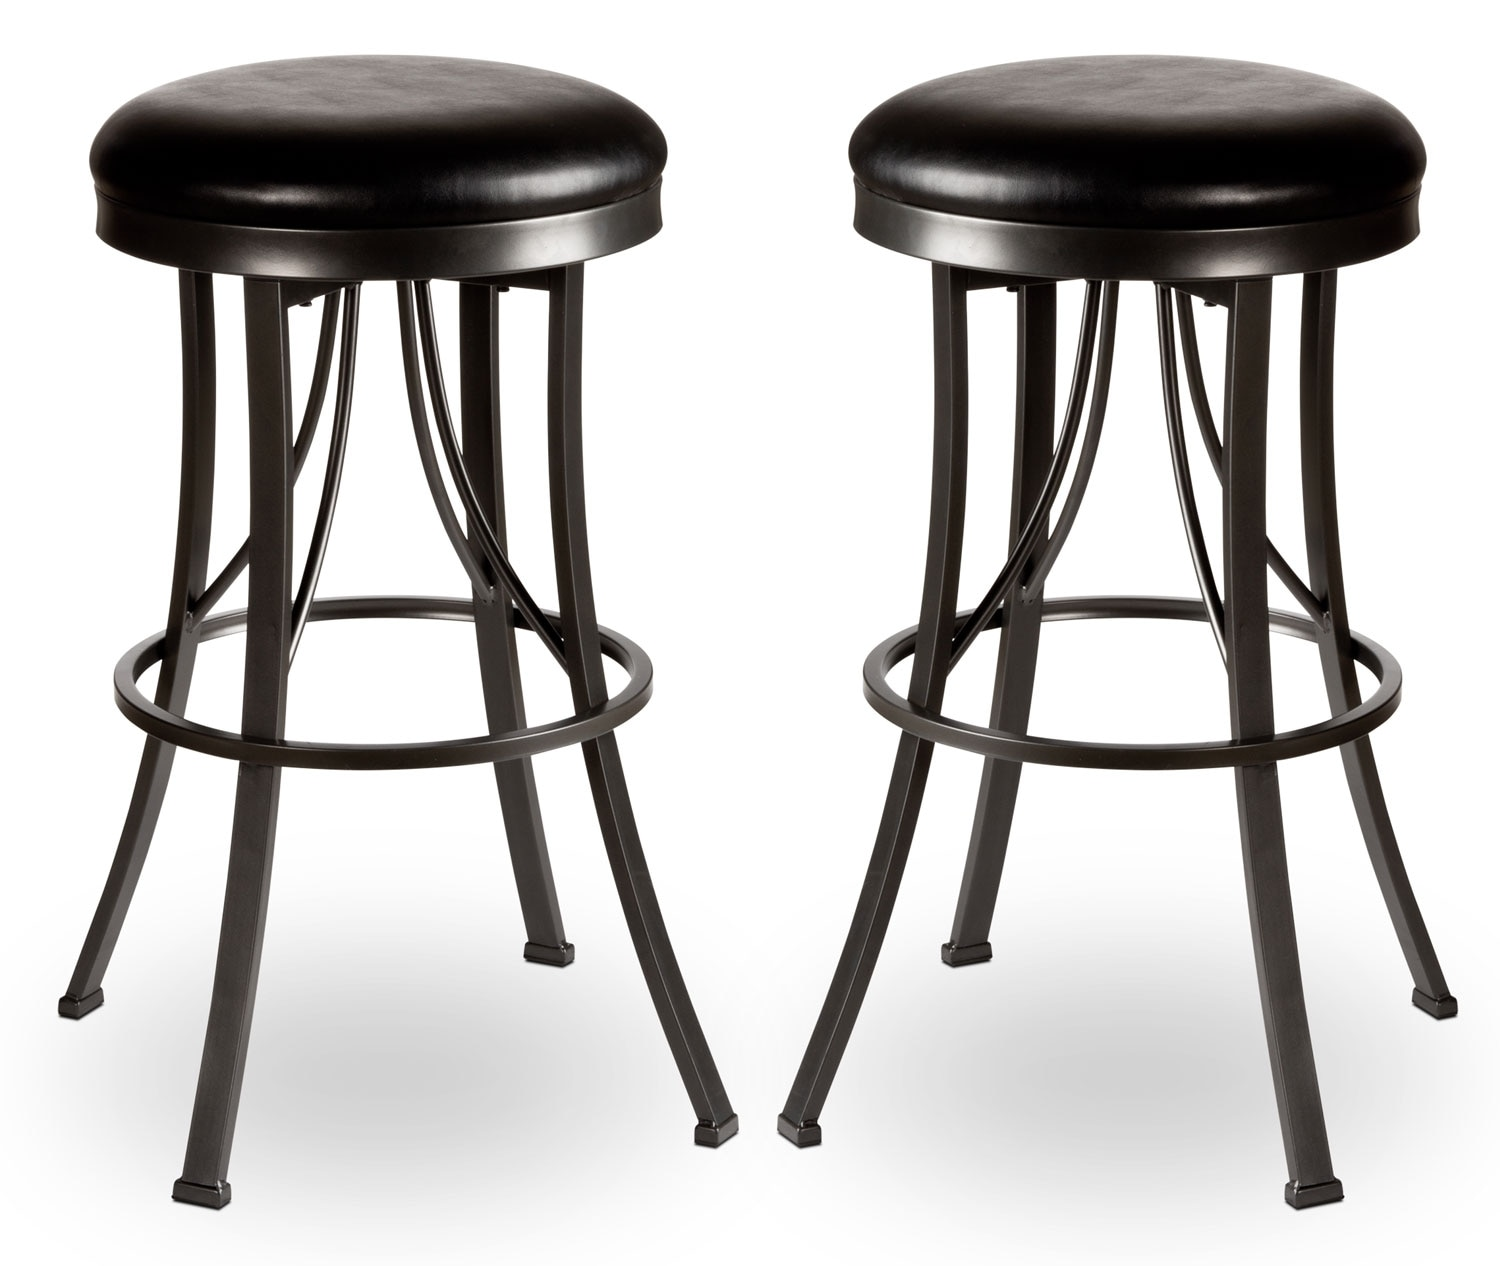 Dining Room Furniture - Ontario Backless Counter-Height Swivel Stool – Set of 2